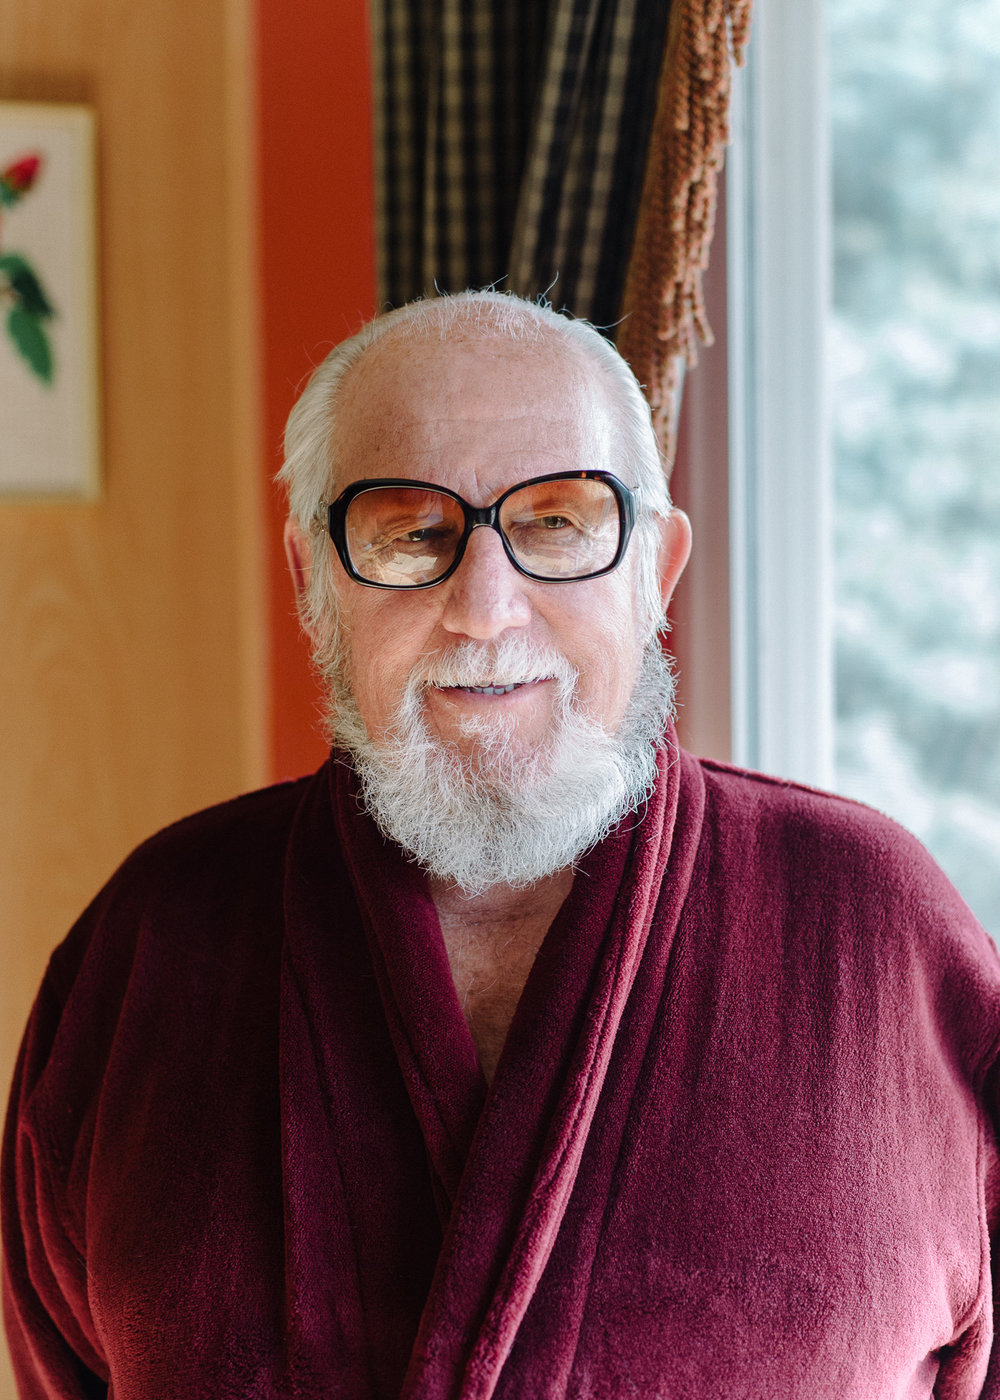 Gerald Foos at his home in Brighton, Colorado, 2016. Photo: Tag Christof